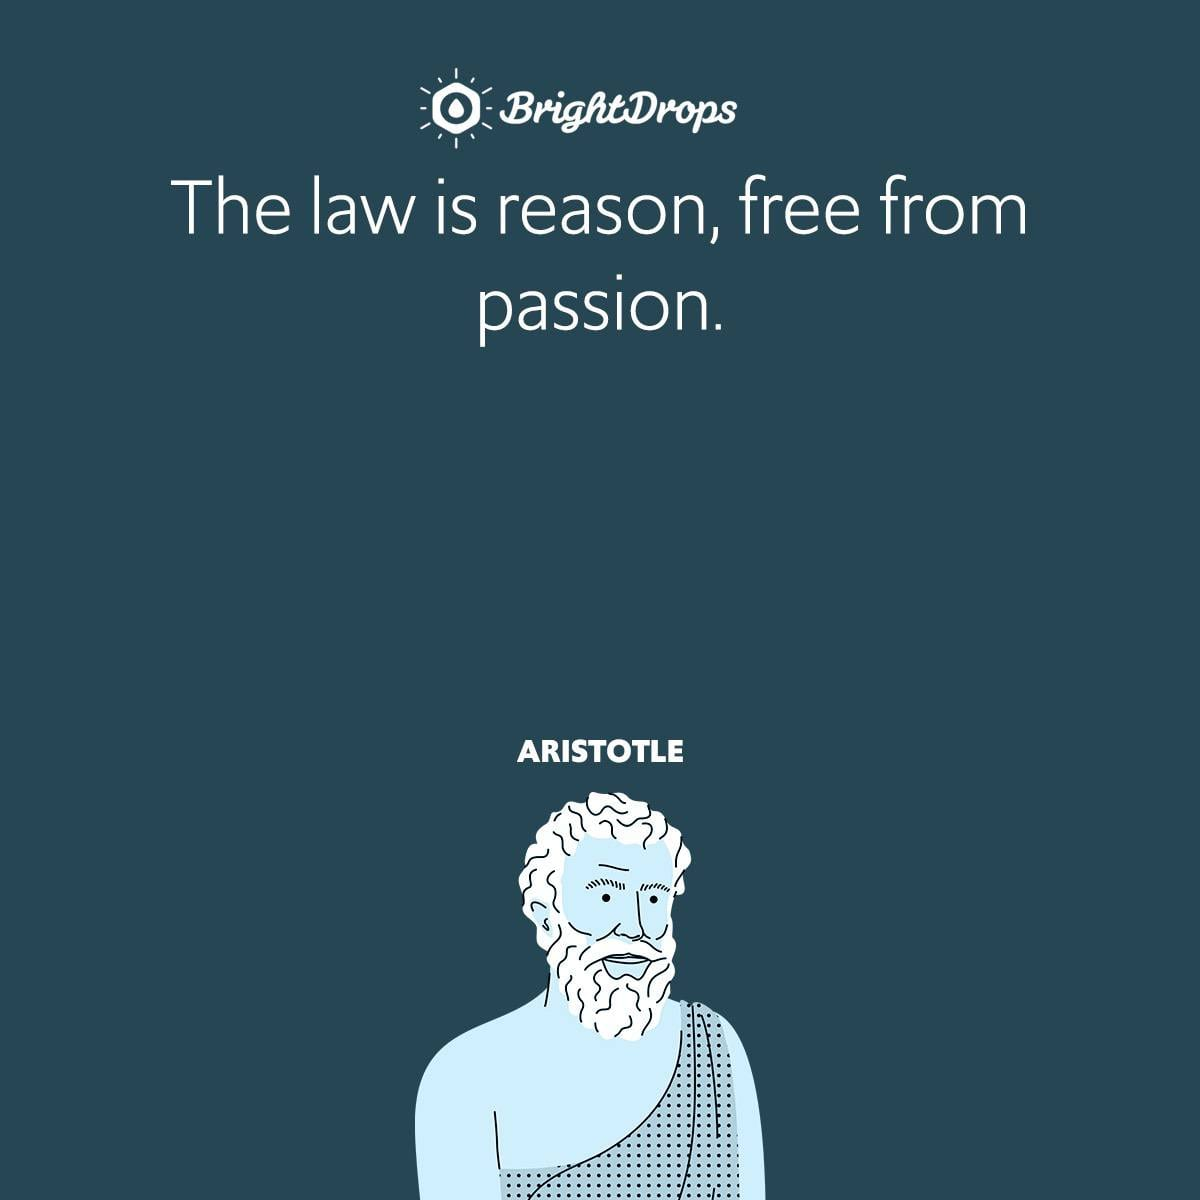 The law is reason, free from passion.